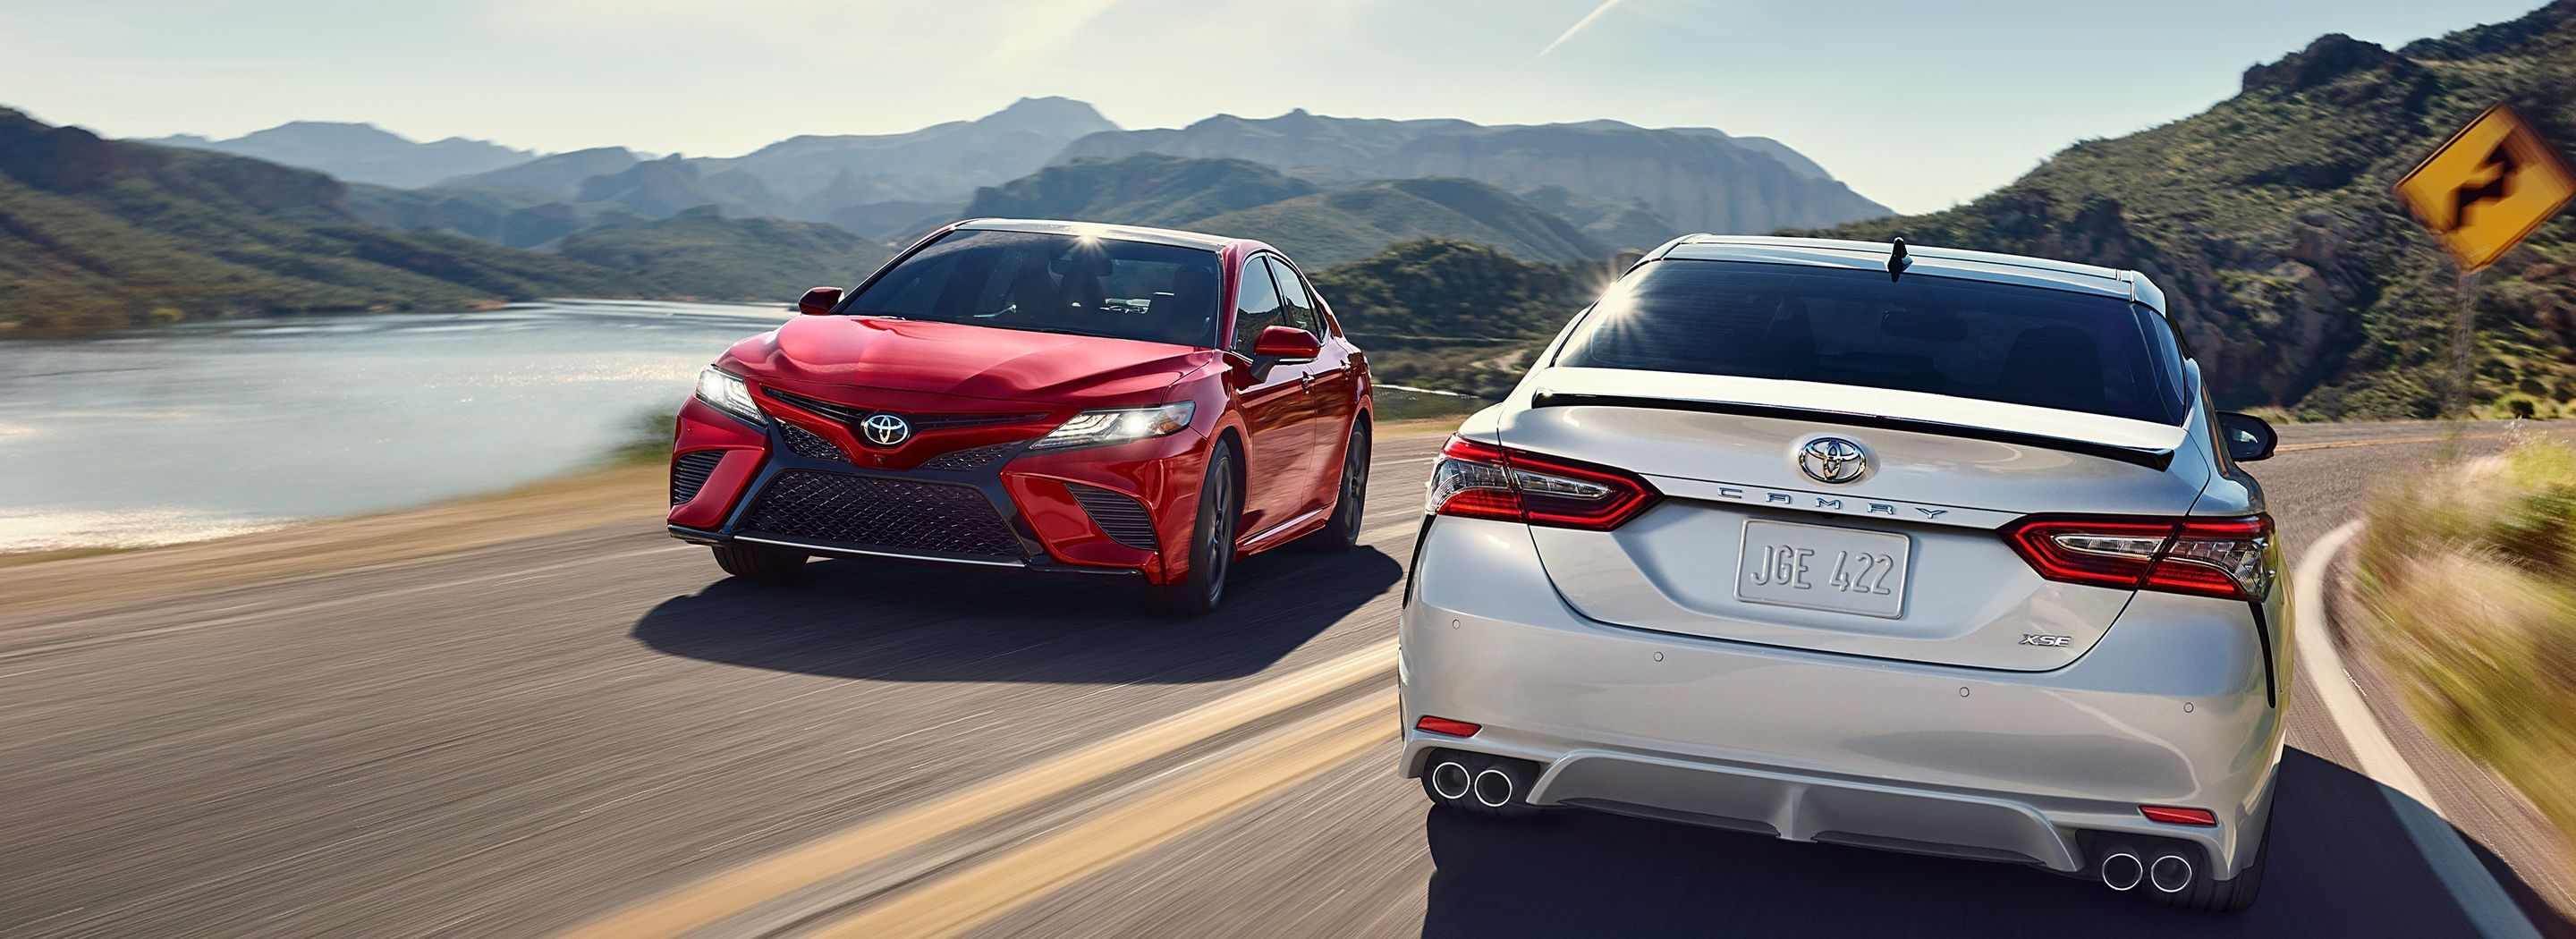 2019 Toyota Camry for Sale in Hackensack, NJ